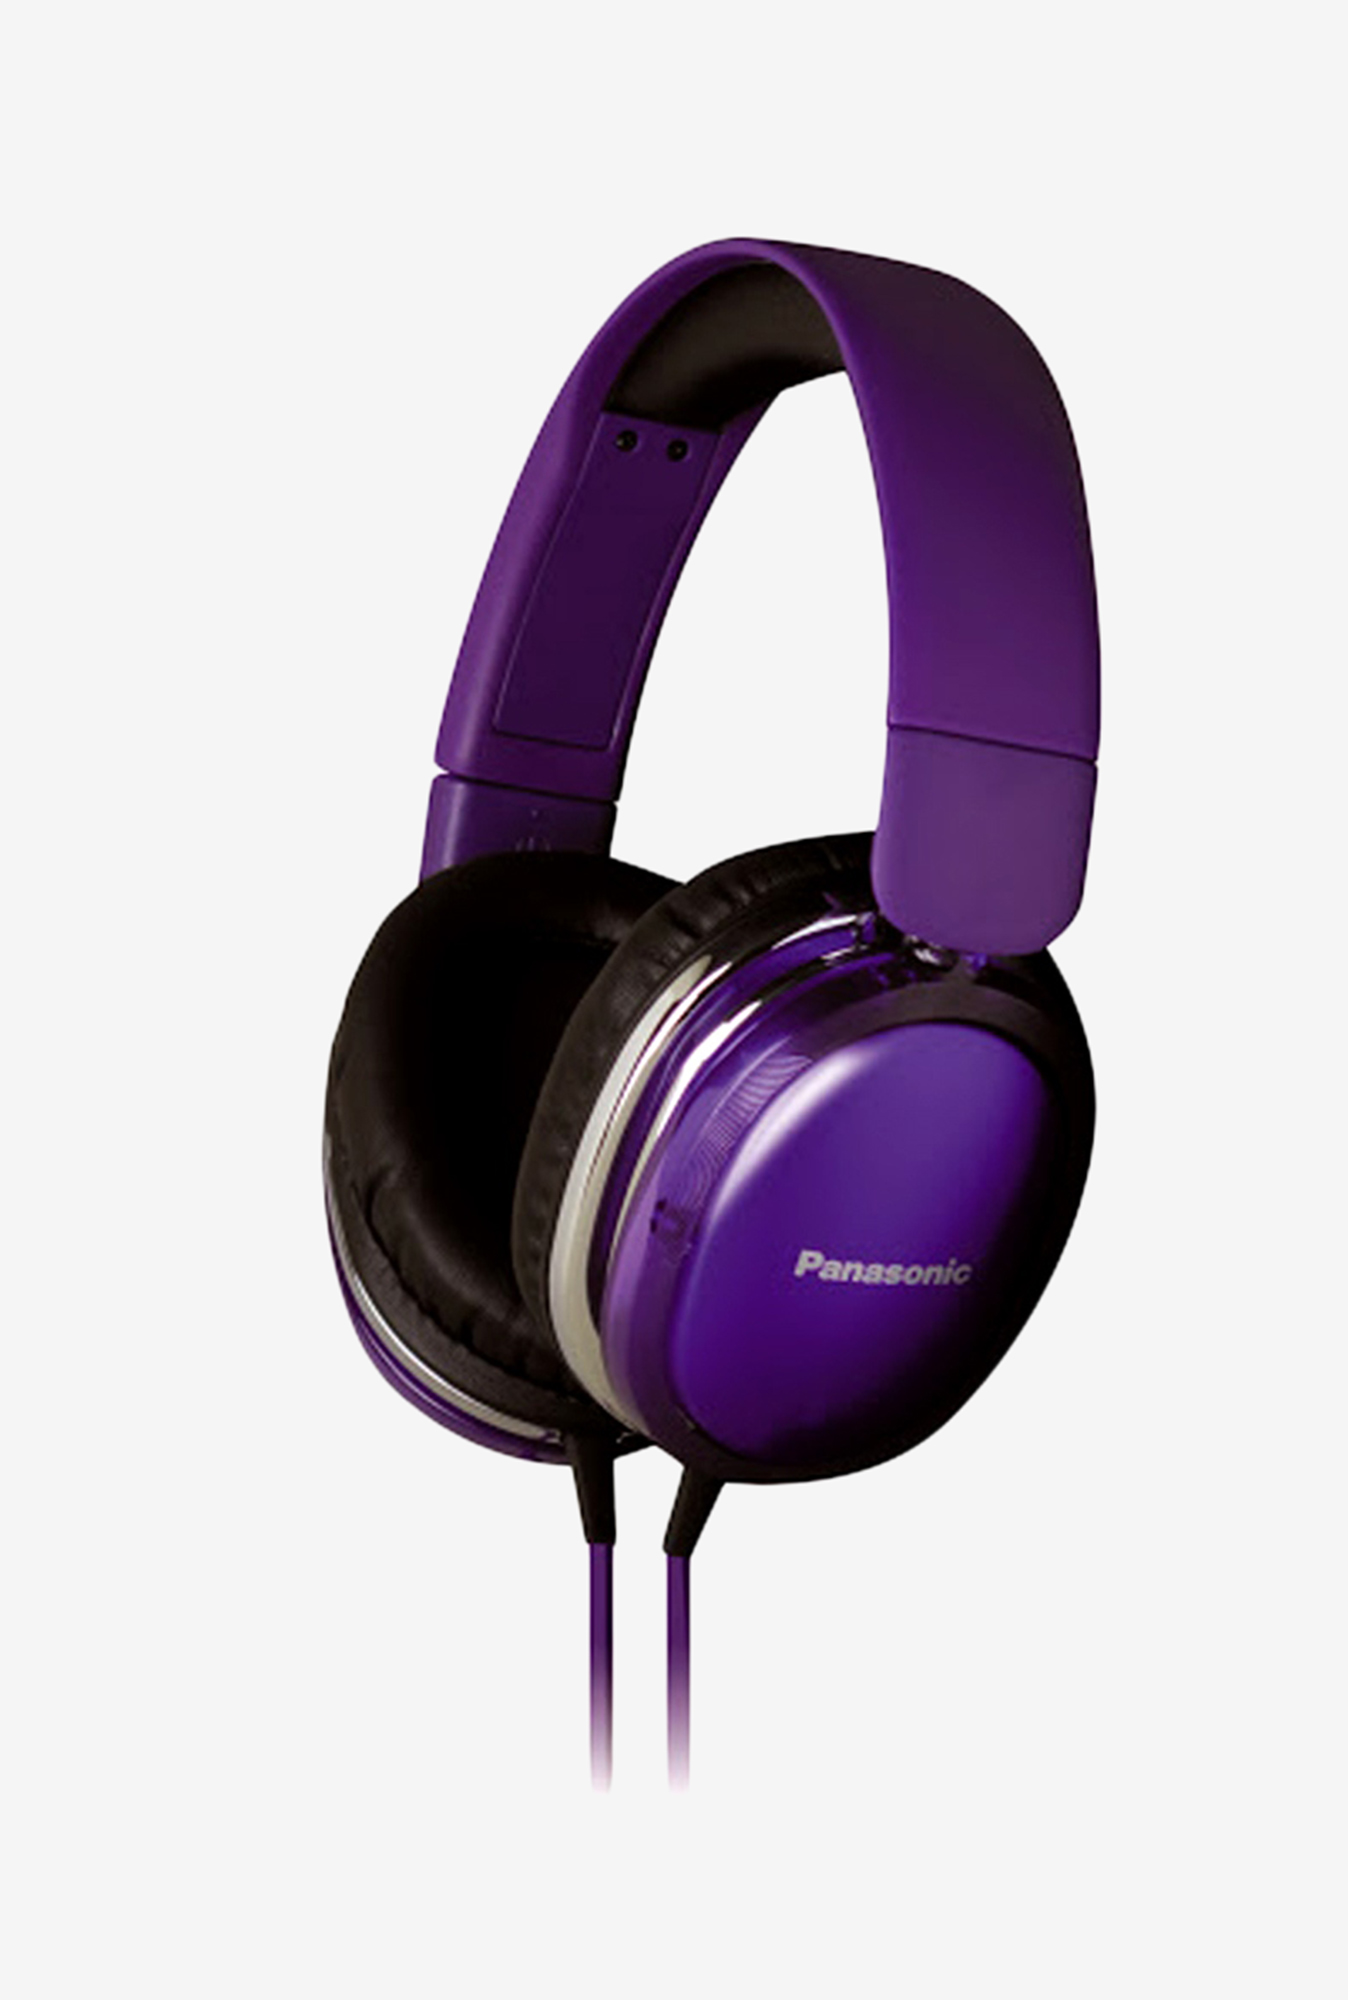 Get Panasonic RP-HX350ME Over-Ear Headphone (Violet) at FLAT 85% off discount offer